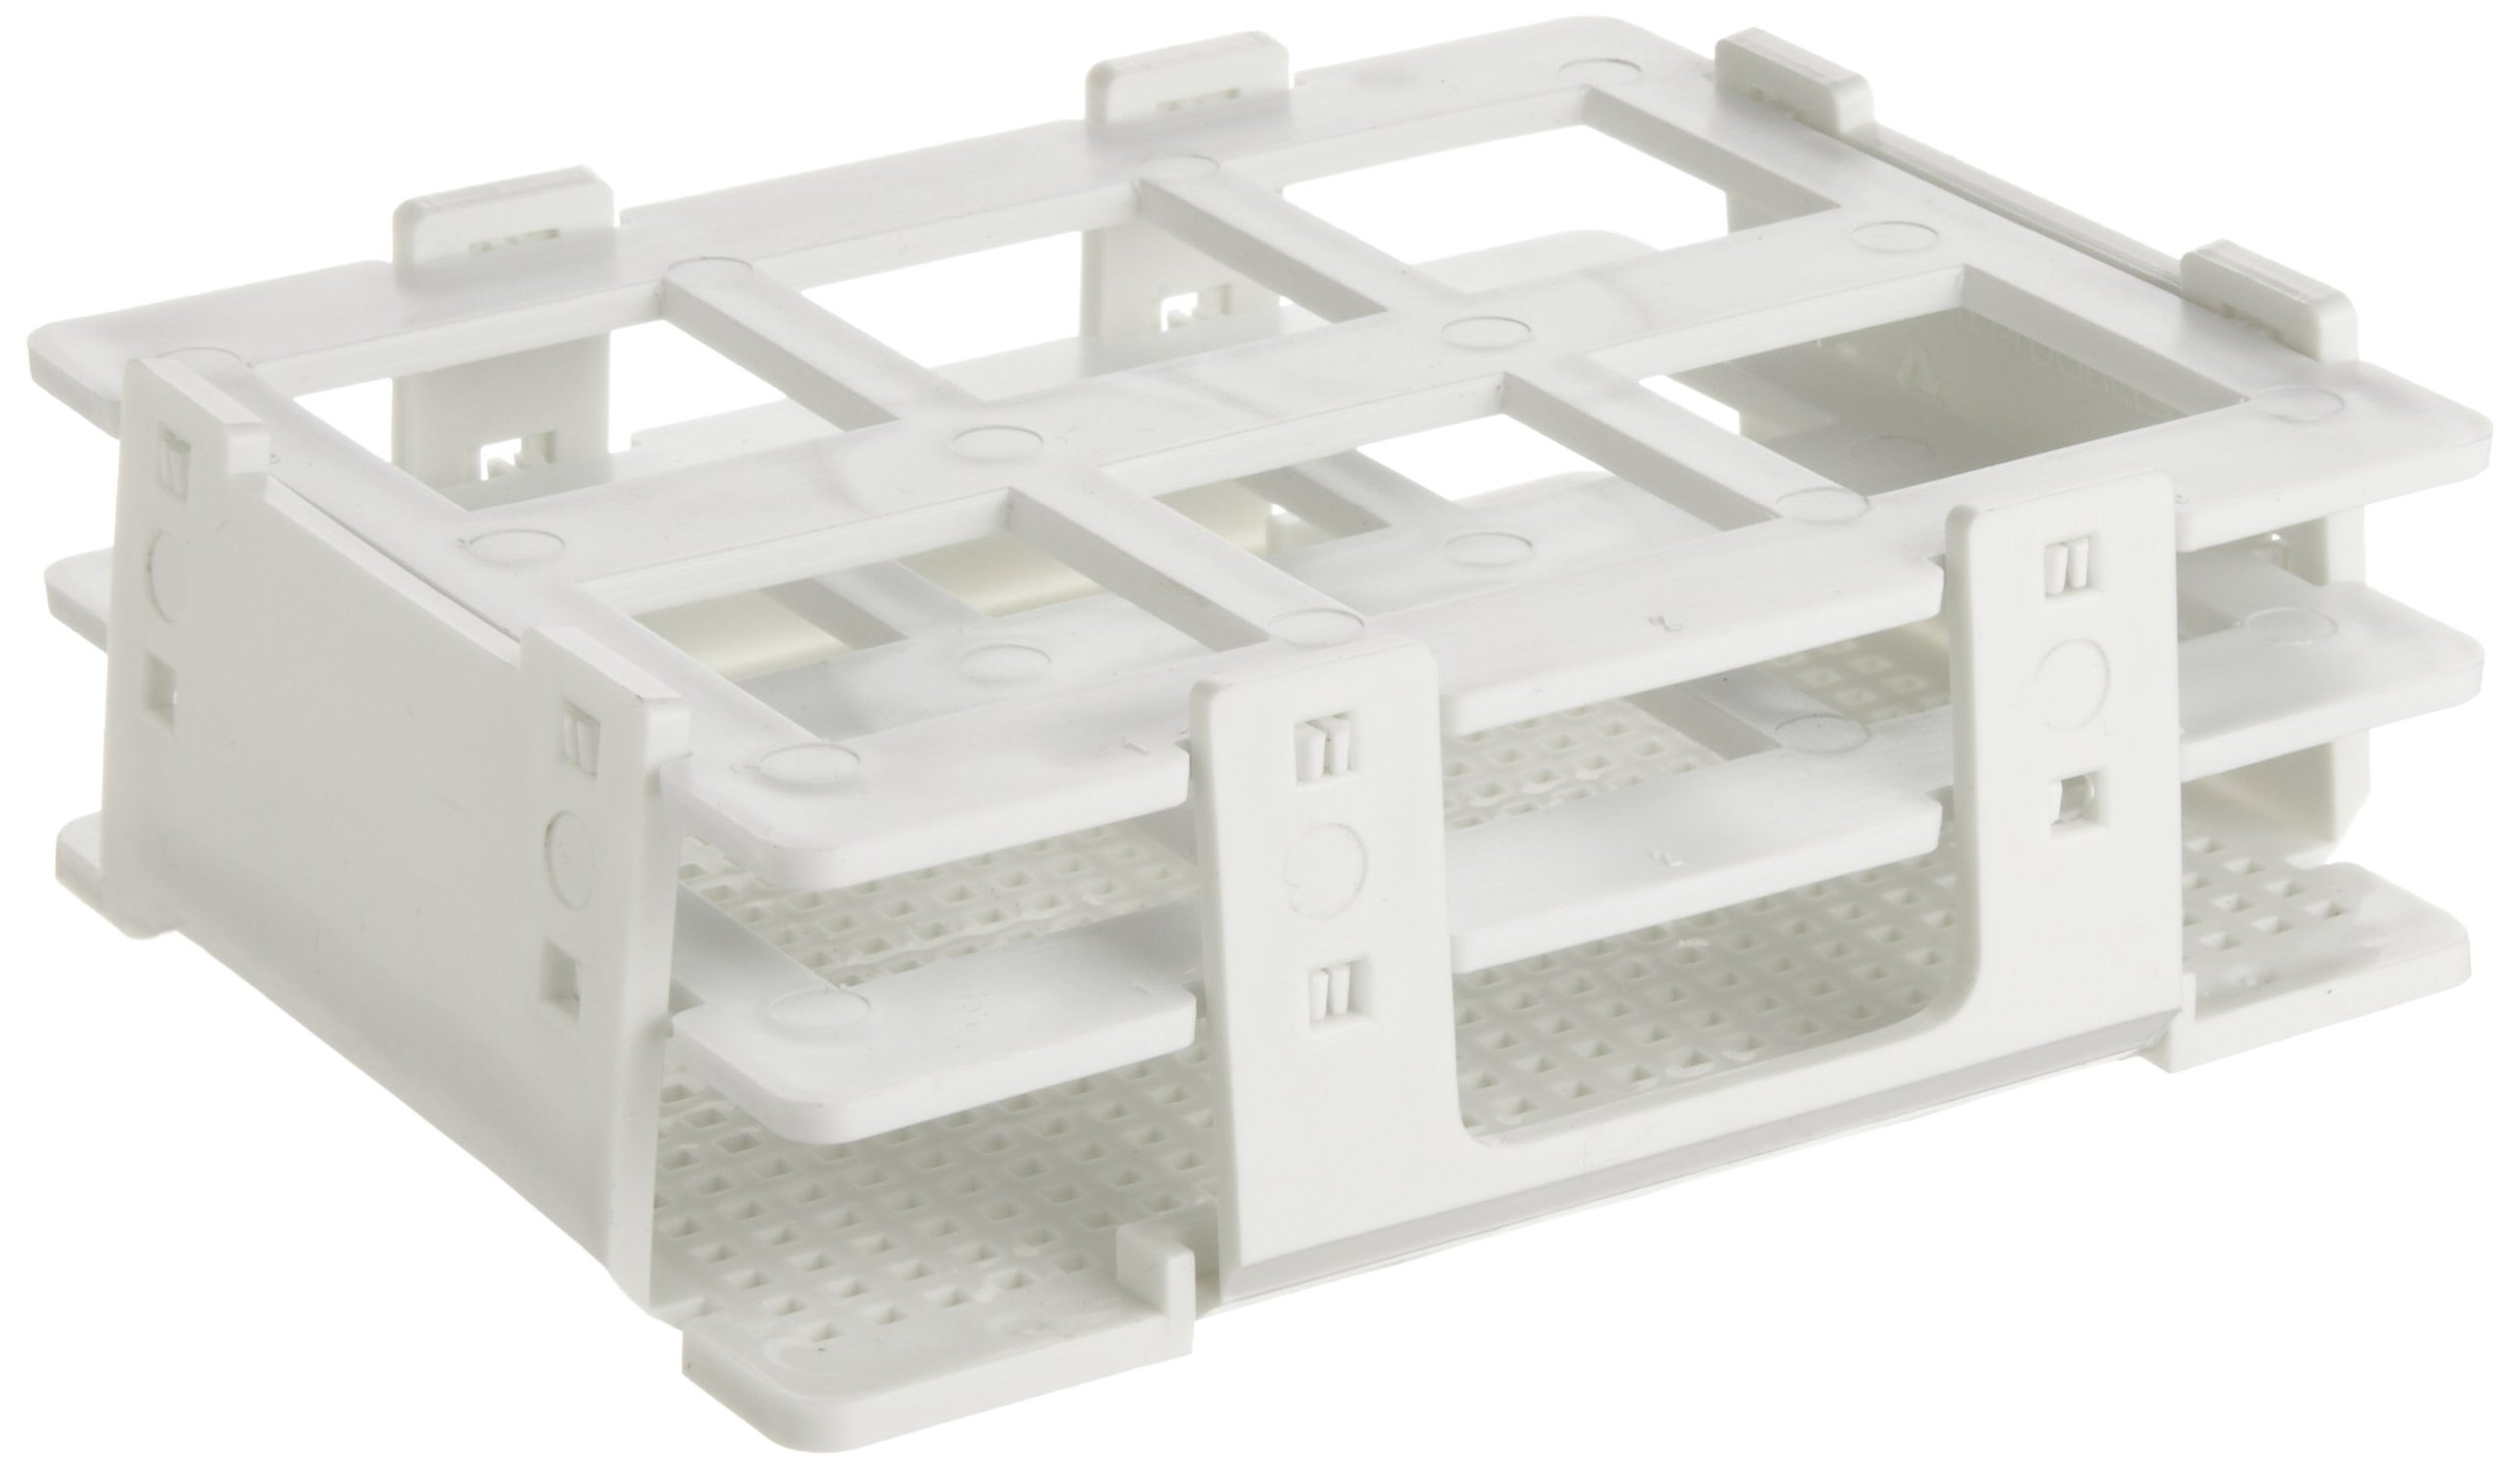 Bel-Art F18514-0030 No-Wire Bottle and Vial Rack; 25-30mm, 6 Places, 5.08 x 4.15 x 1.70 in., Polypropylene